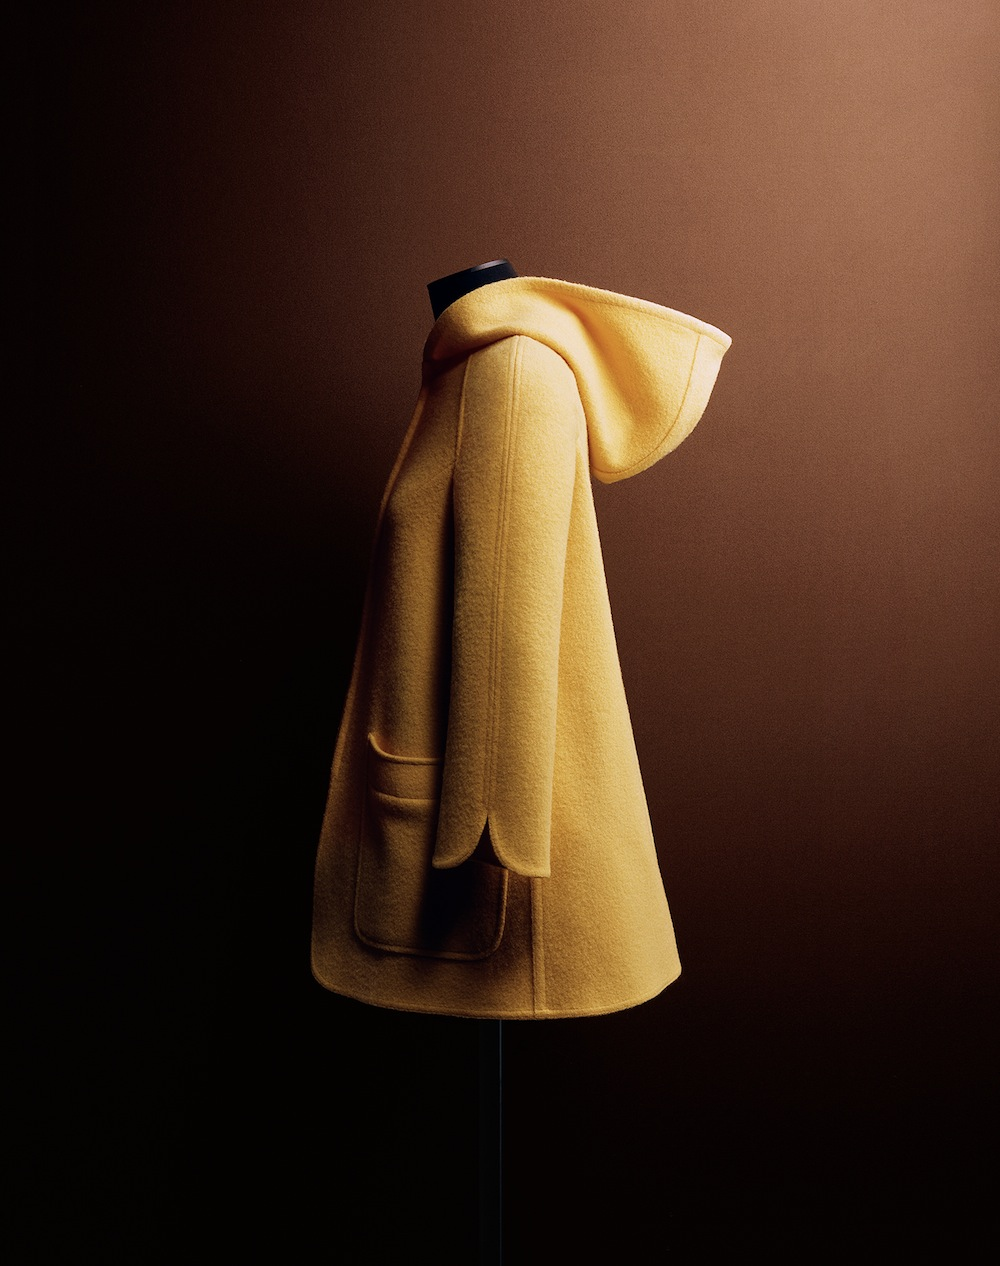 the_tree_mag-coats-by-maxmara-by-dhyan-bodha-derasmo-g-50.jpg